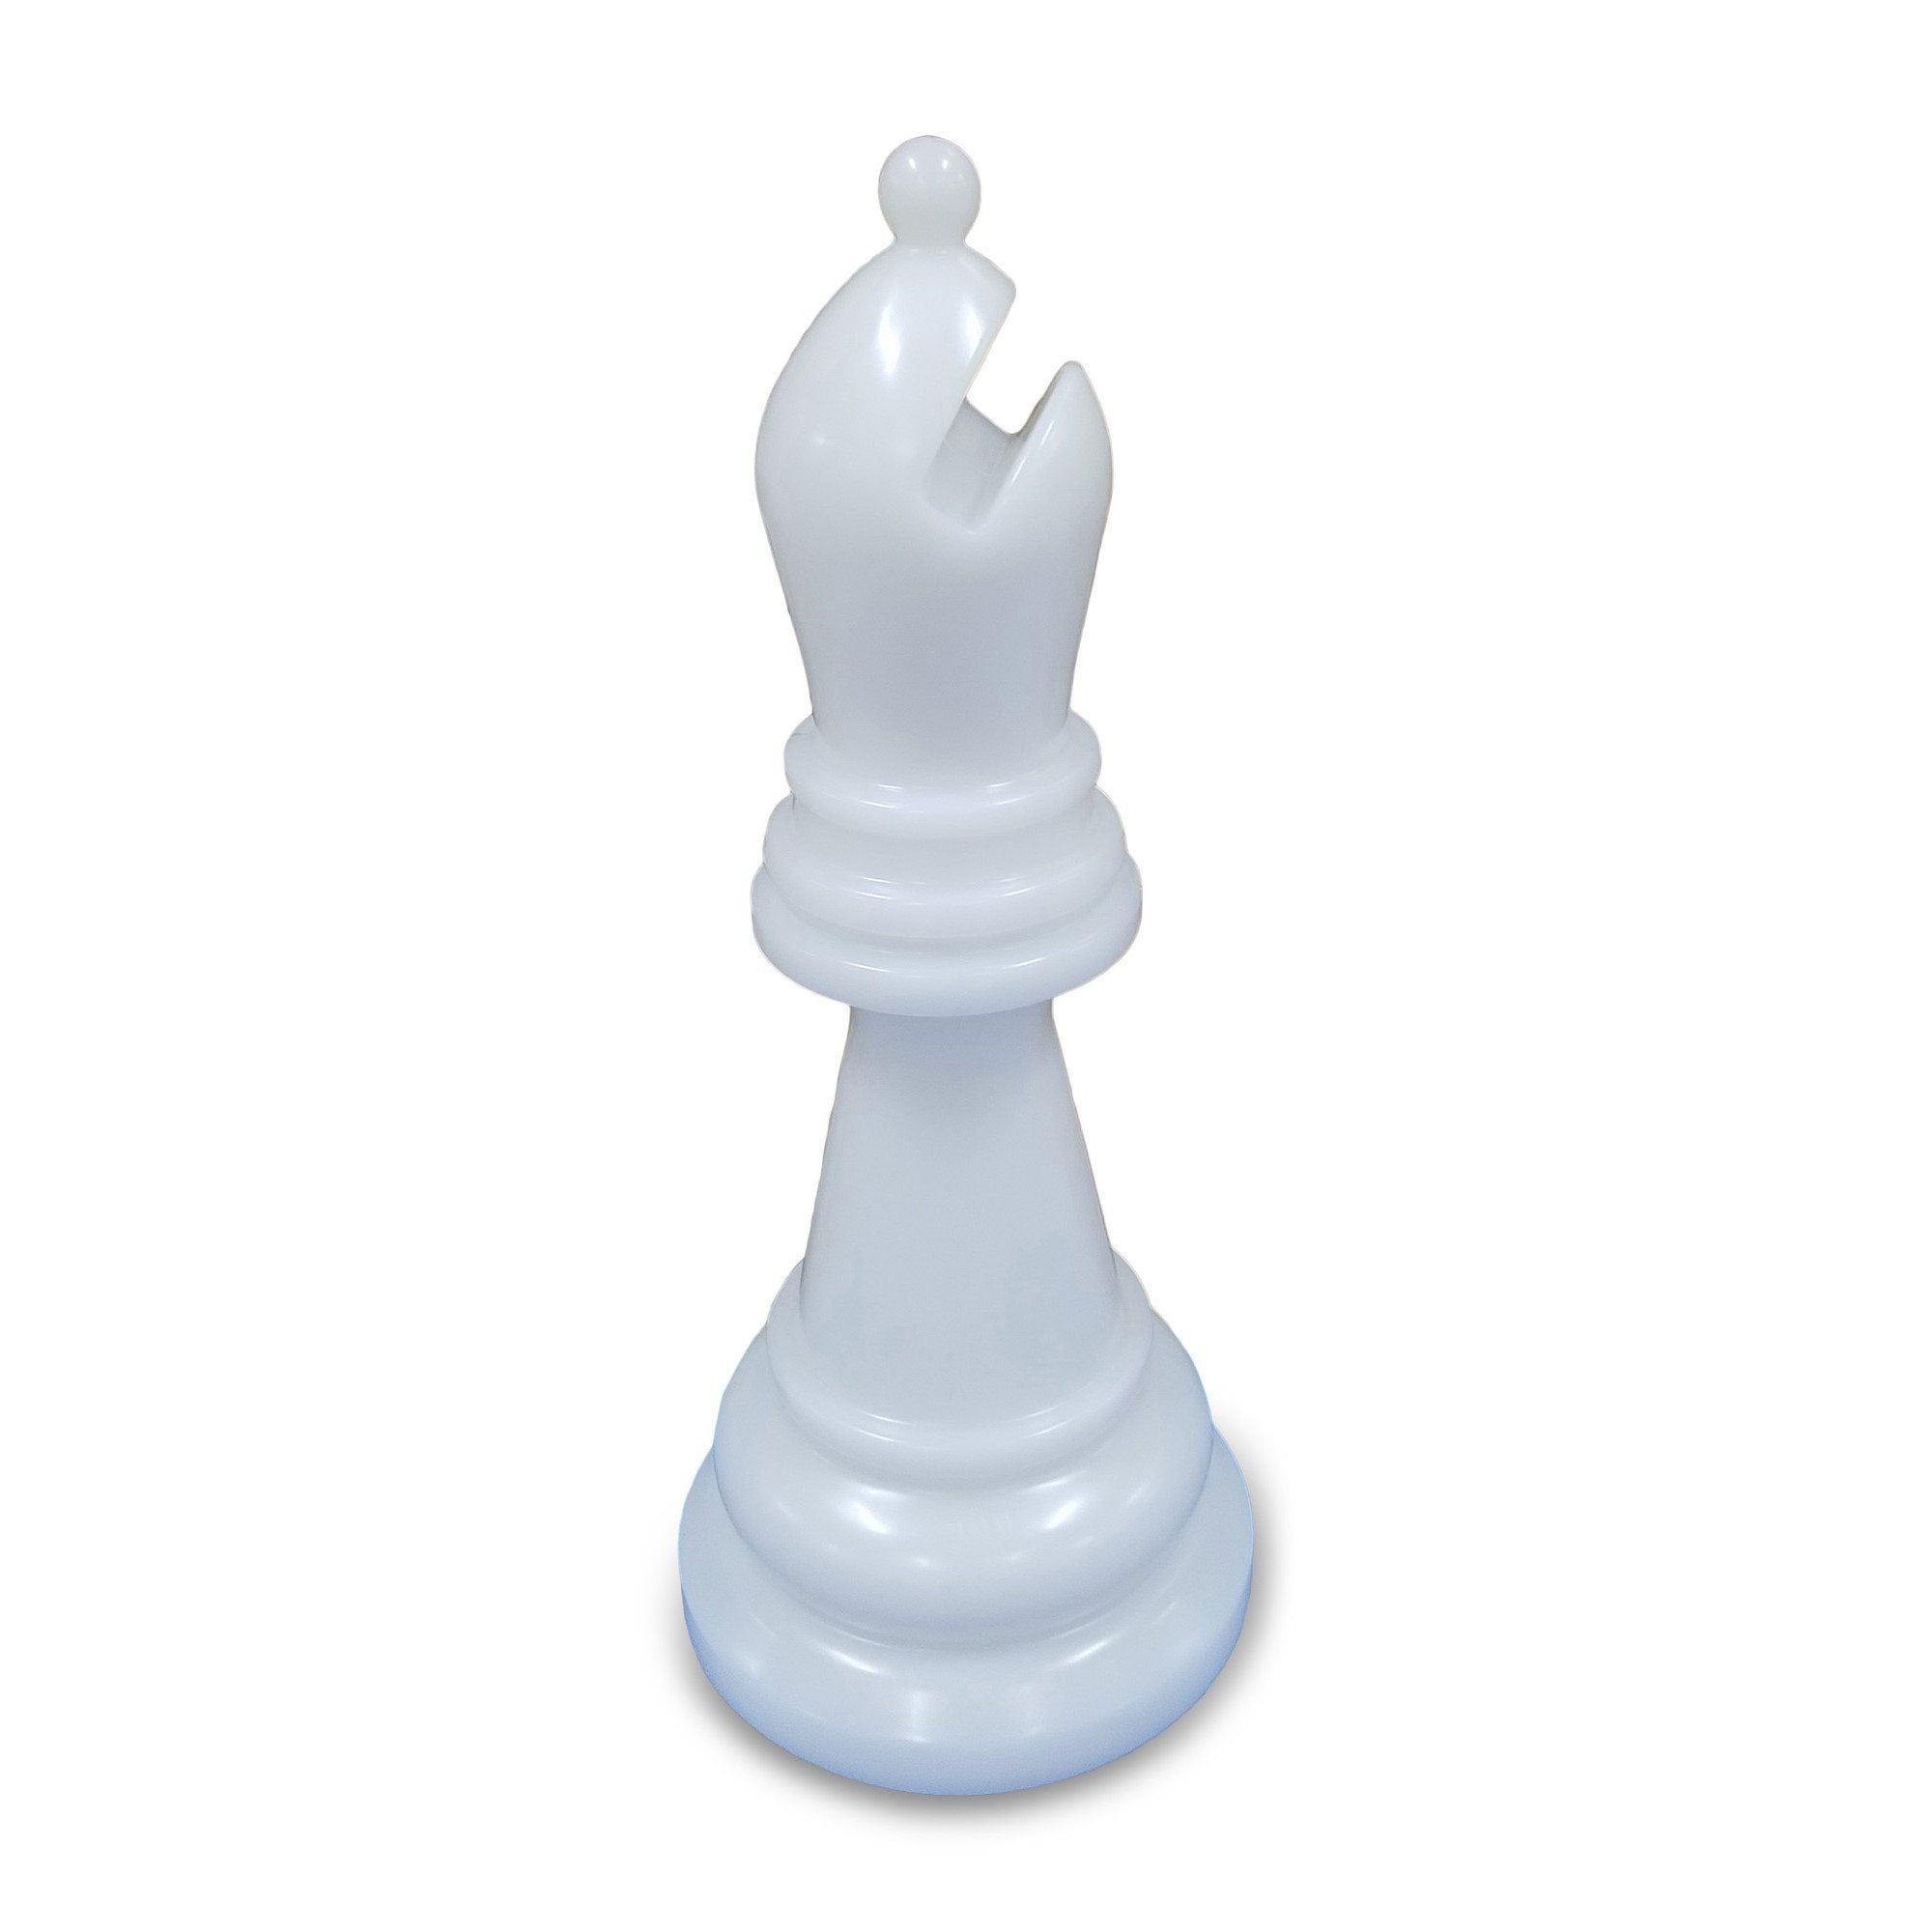 MegaChess 20 Inch White Premium Plastic Bishop Giant Chess Piece |  | GiantChessUSA